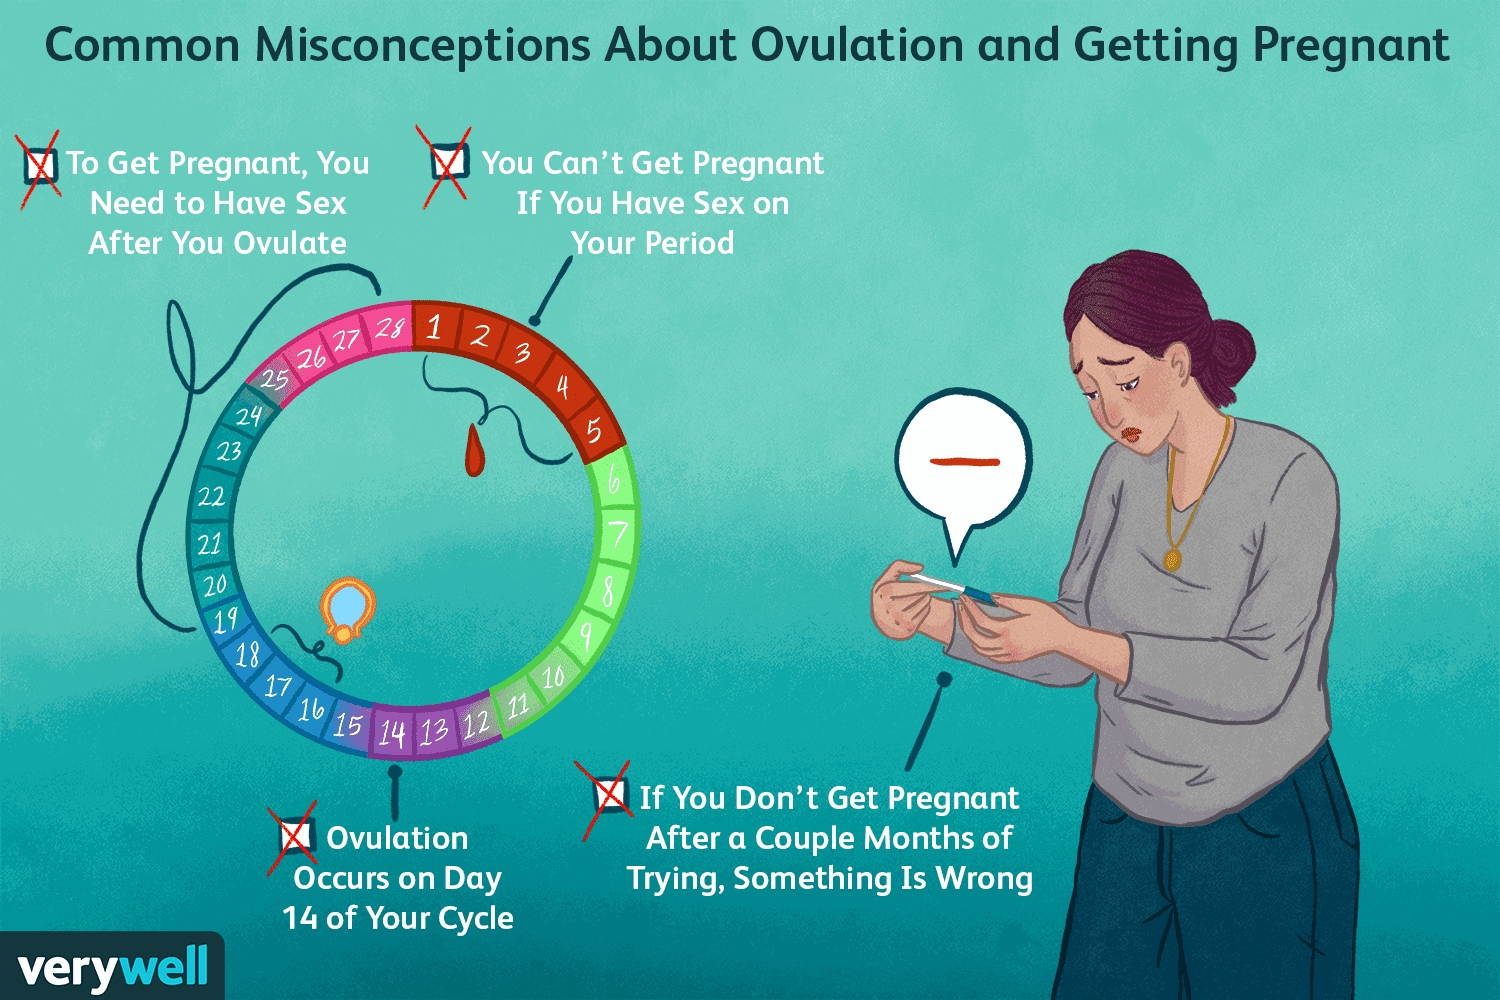 16 Myths About Getting Pregnant And Ovulation